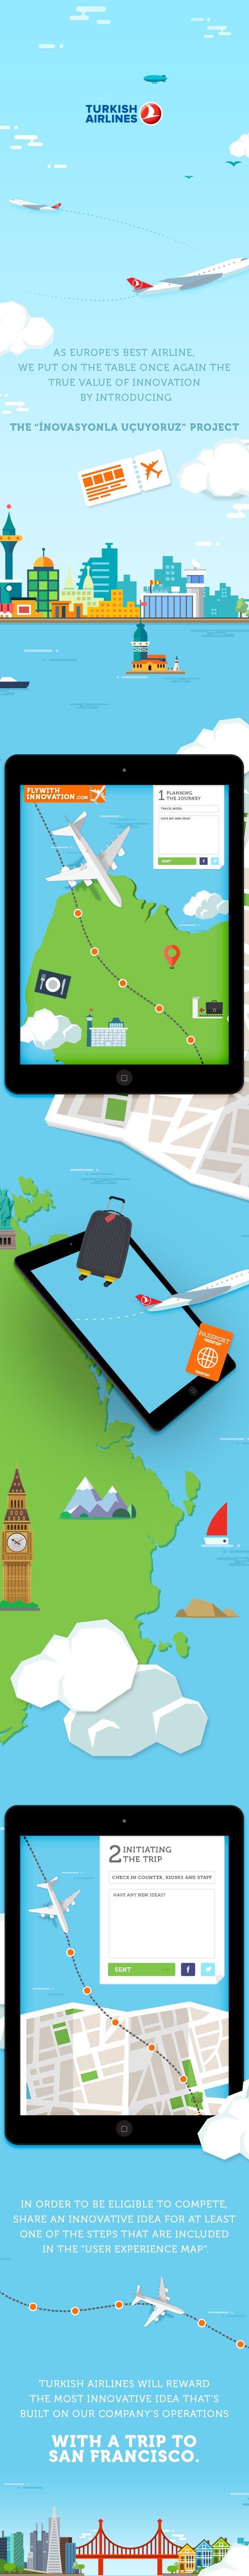 Turkish Airlines - Fly with innovations on Behance